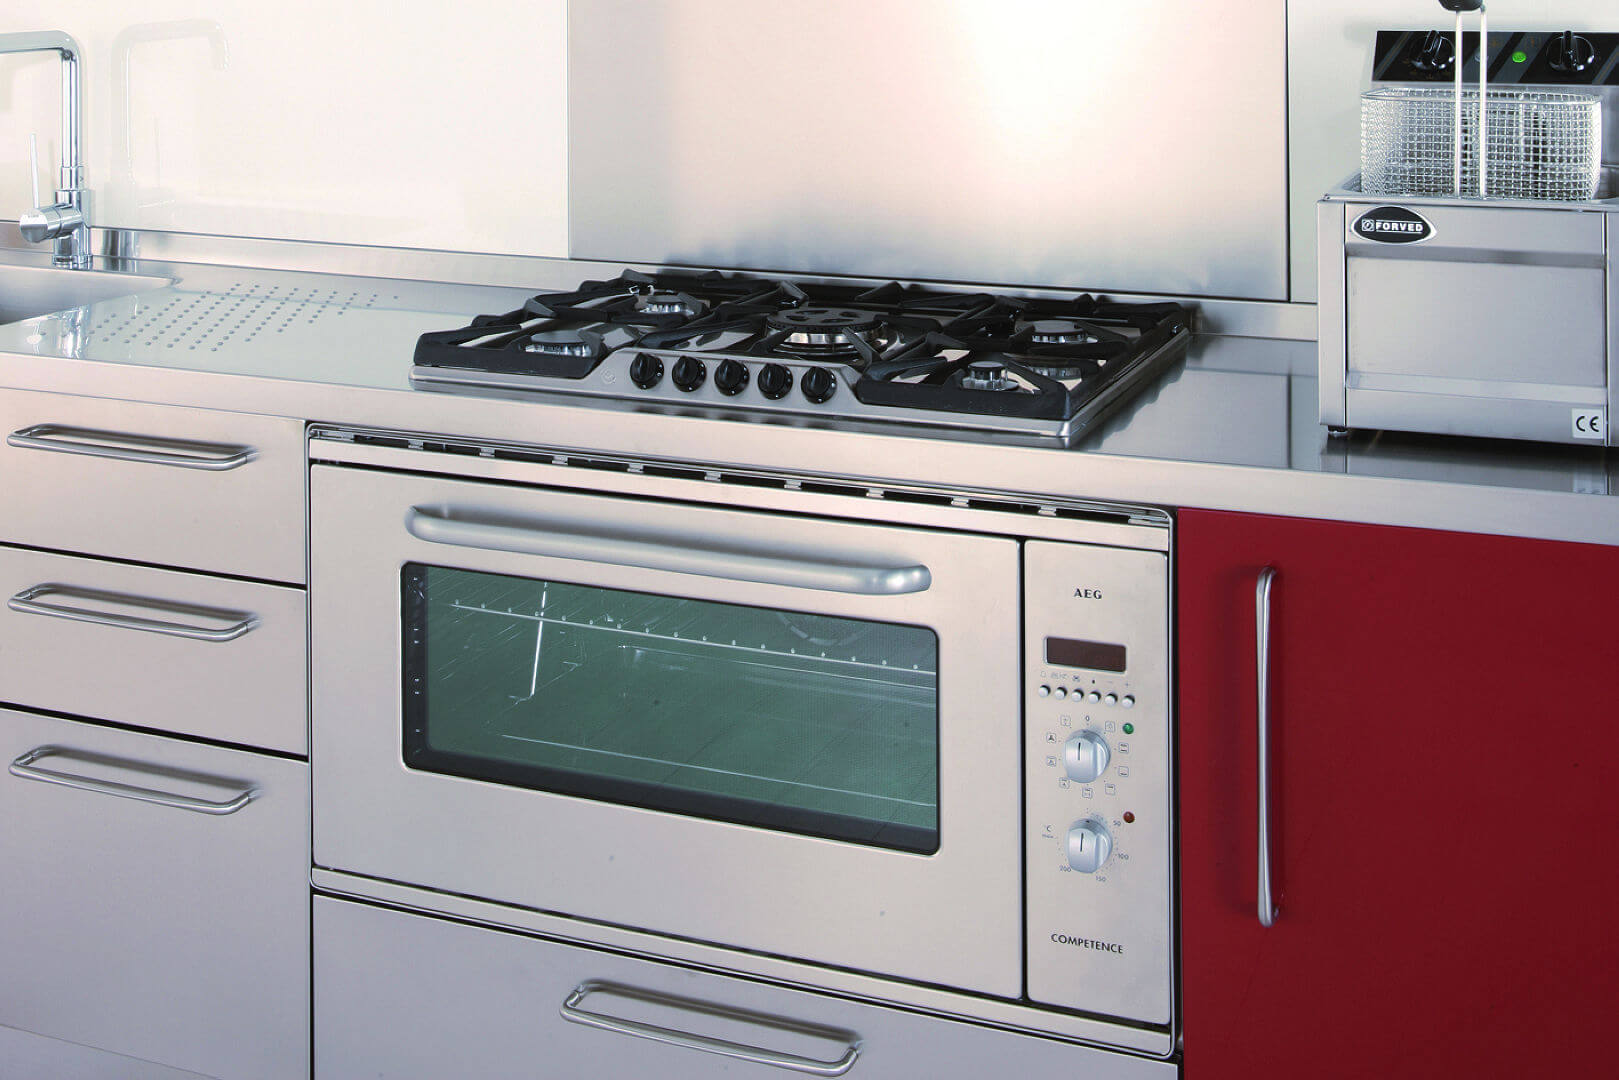 Arca Cucine Italy - Domestic stainless steel kitchens - 13 - Gourmet - block Cooking